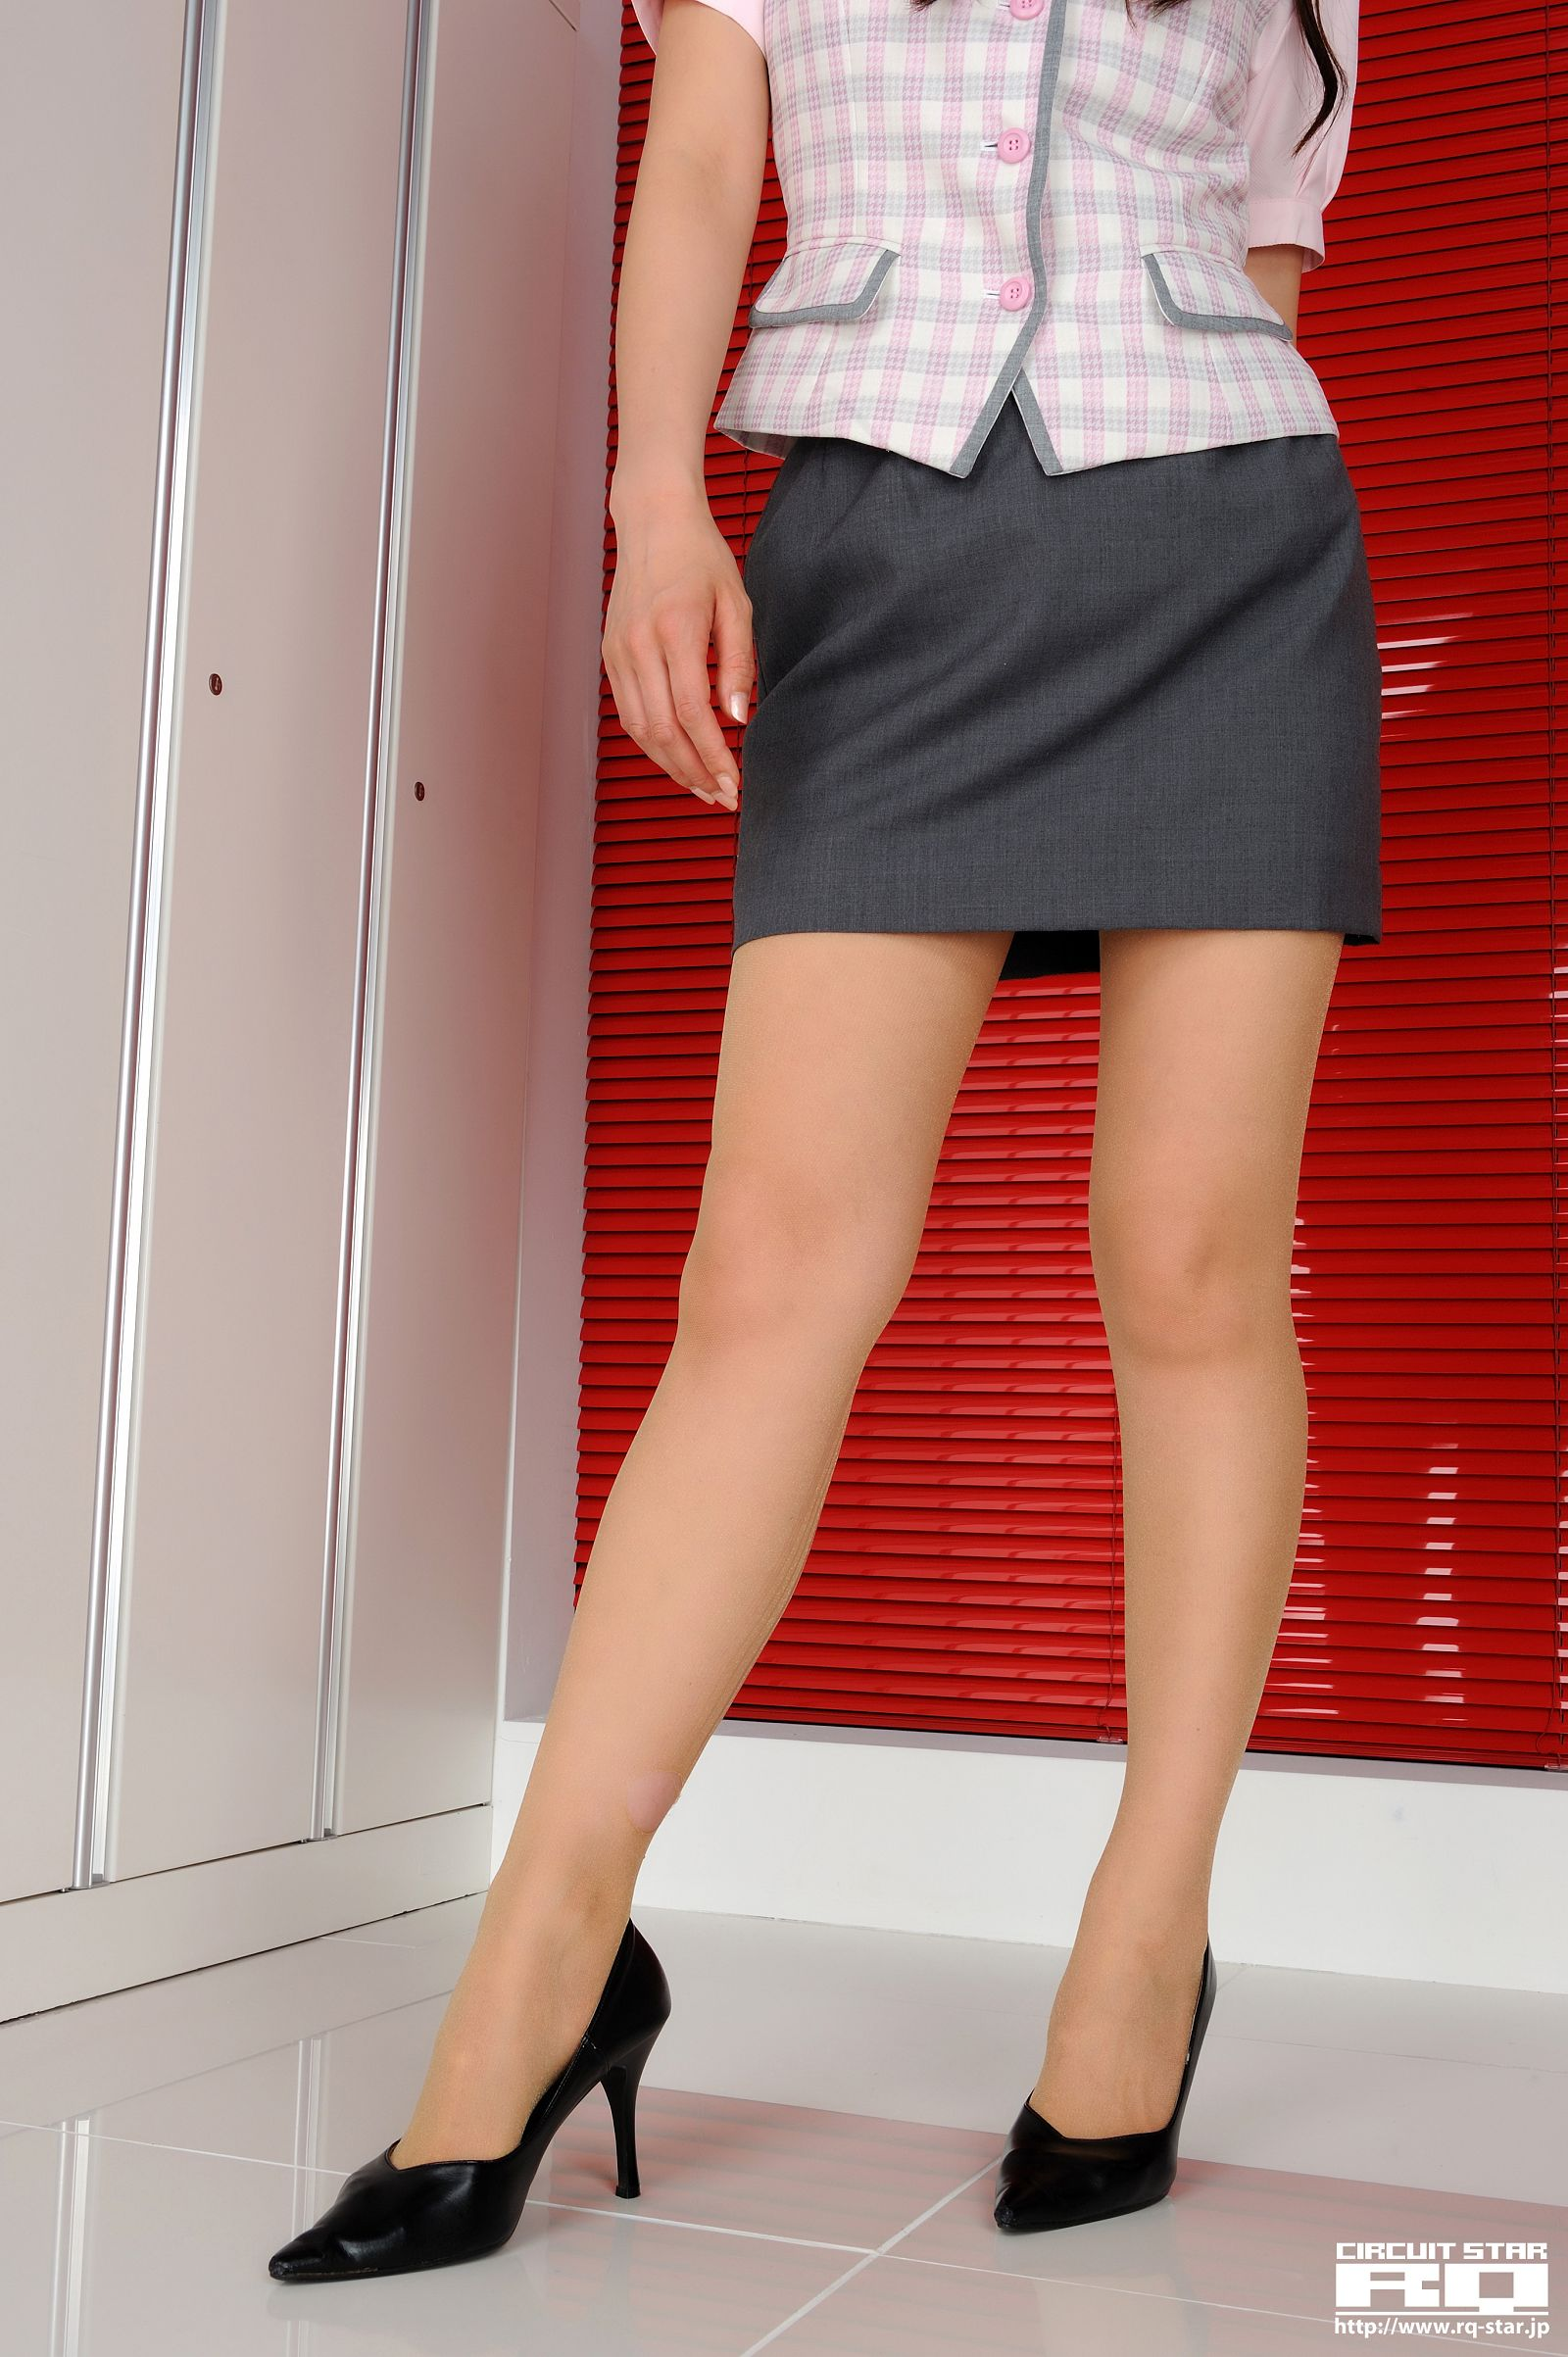 [RQ STAR美女] NO.0327 Rena Sawai 澤井玲菜 Office Lady[170P] RQ STAR 第2张